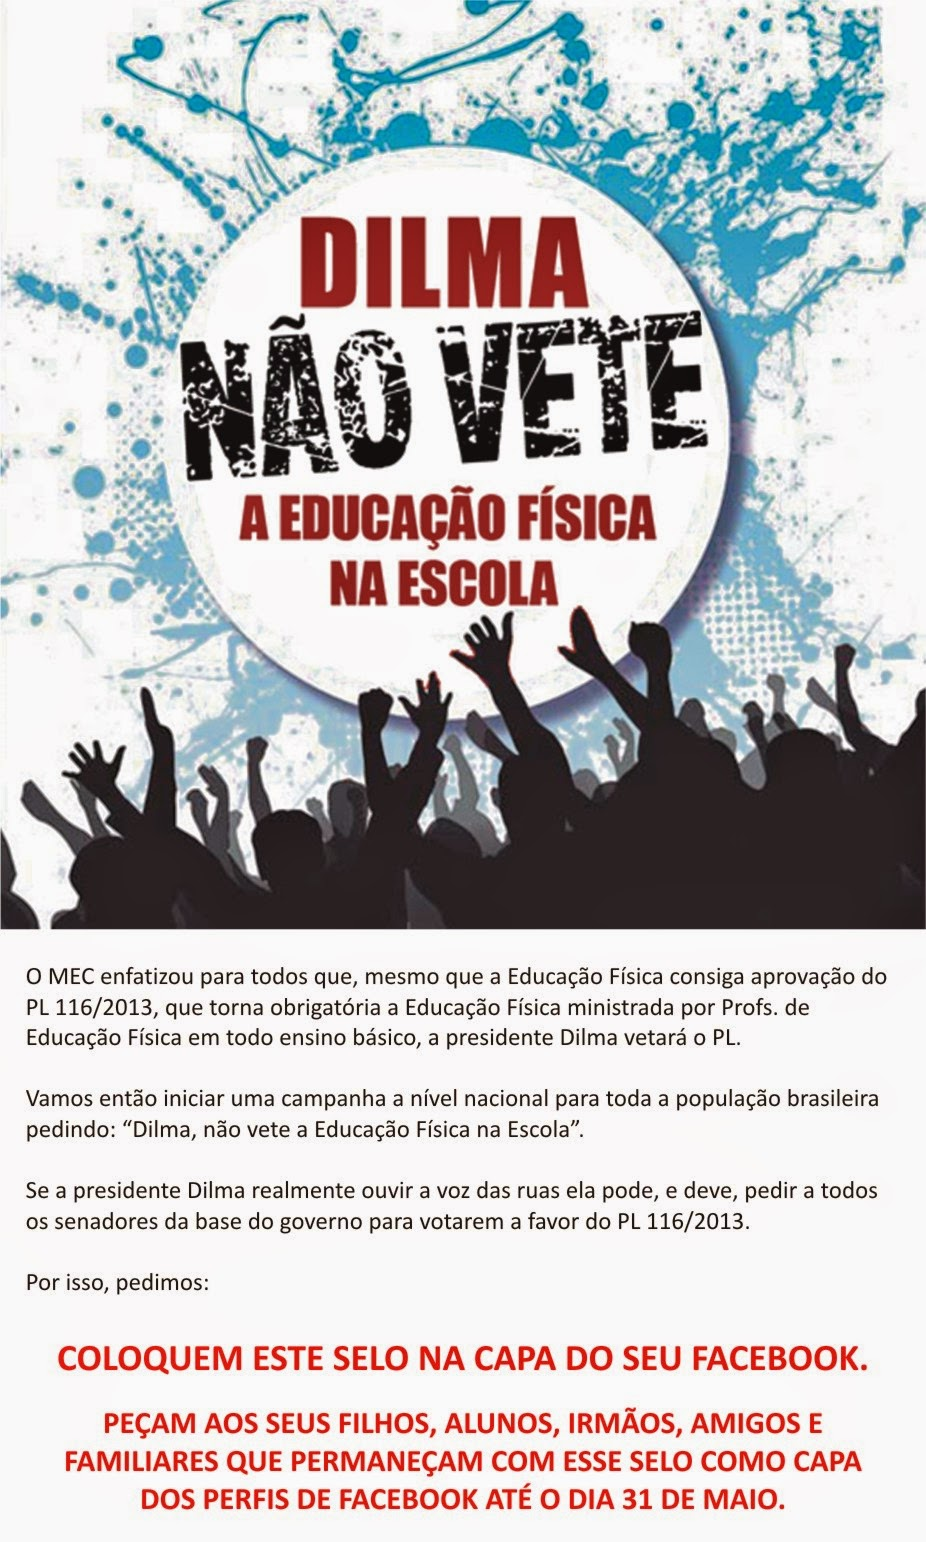 http://cref1.org.br/noticias.php?id=824